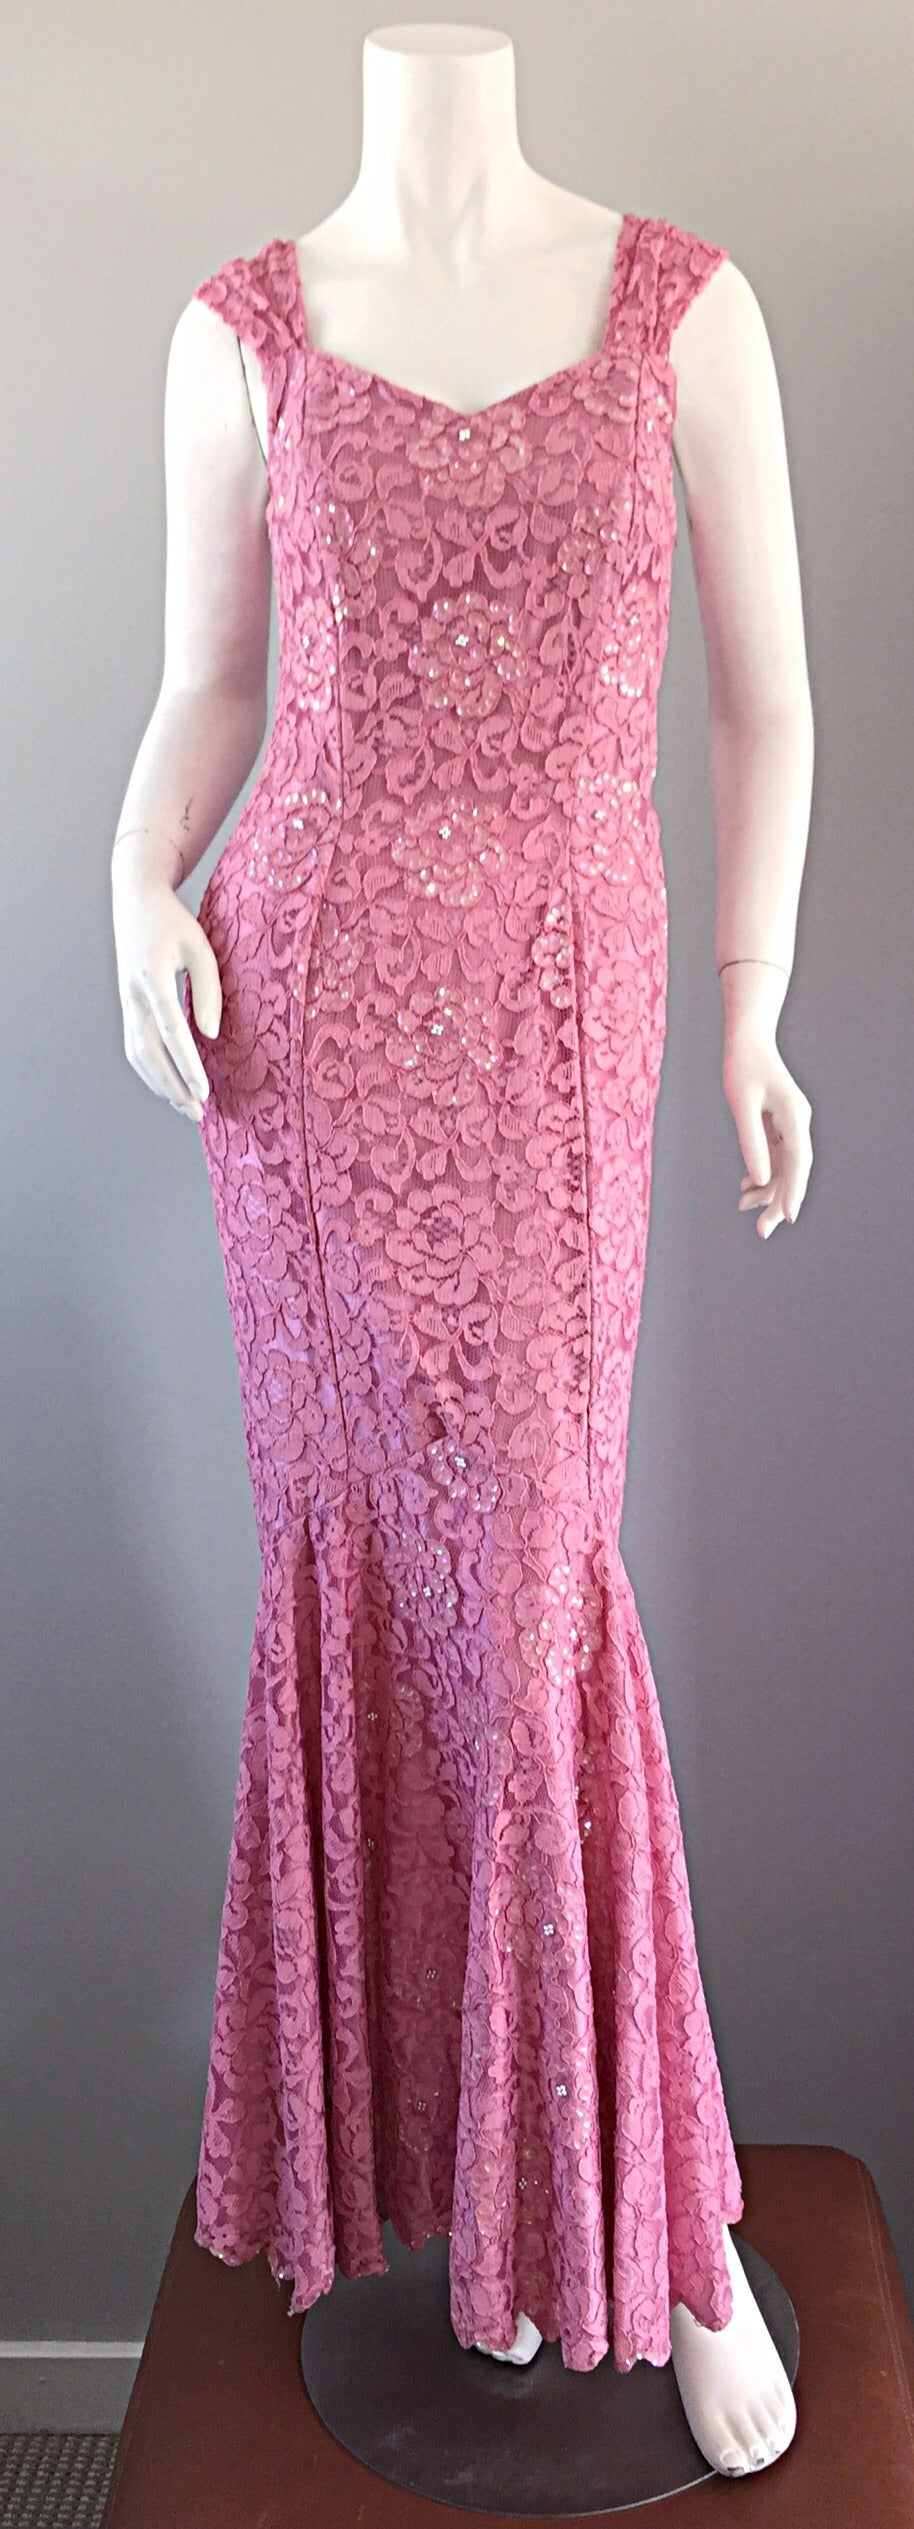 Gorgeous 1950s 50s Couture Pink Vintage Mermaid Dress w/ Chantilly Lace + Sequin 2